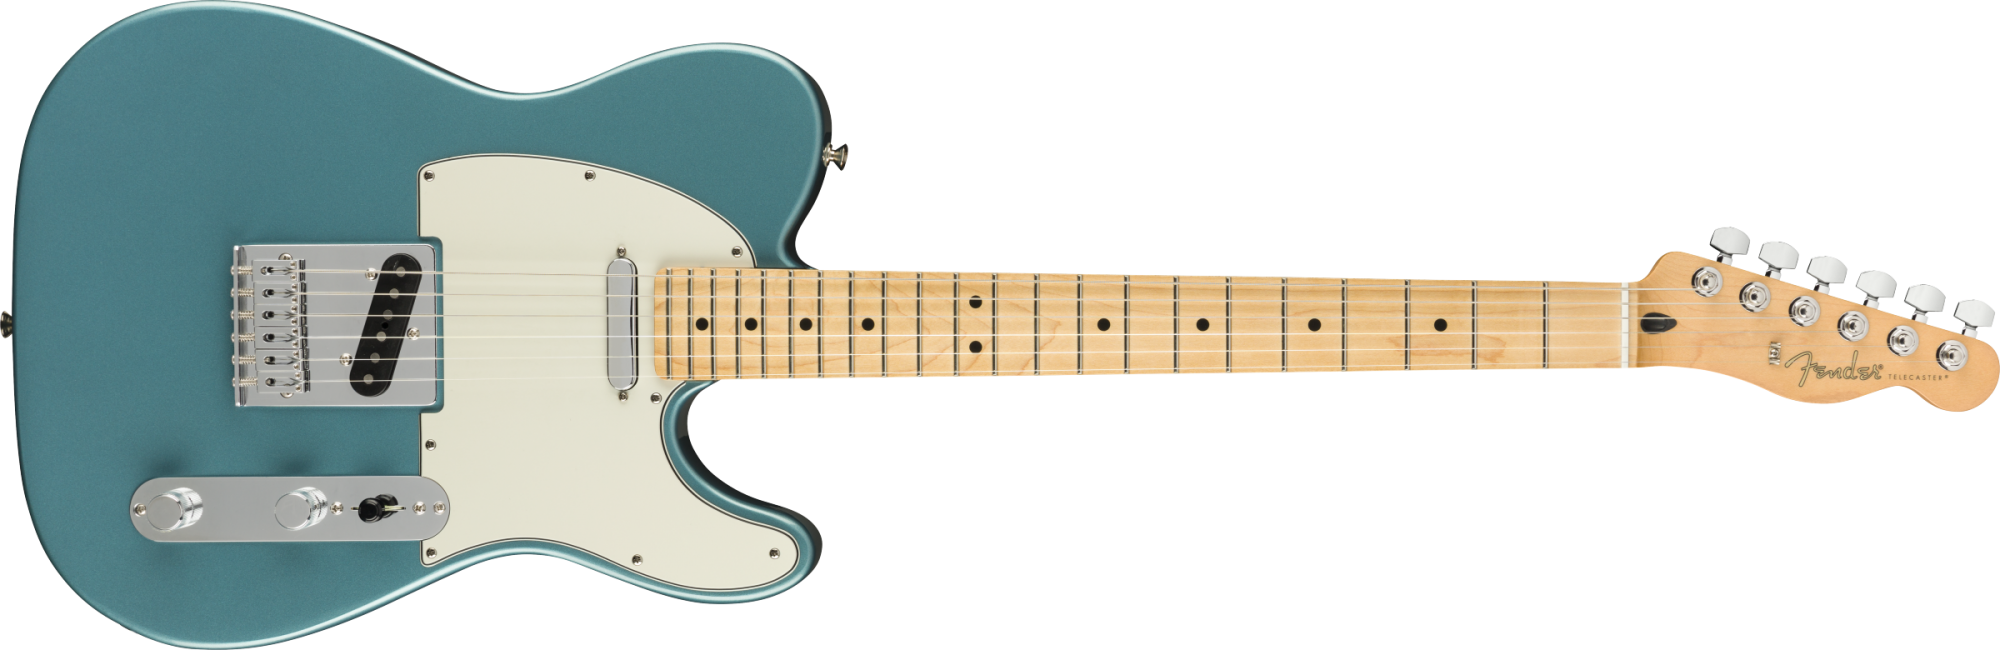 Player Telecaster - Tidepool